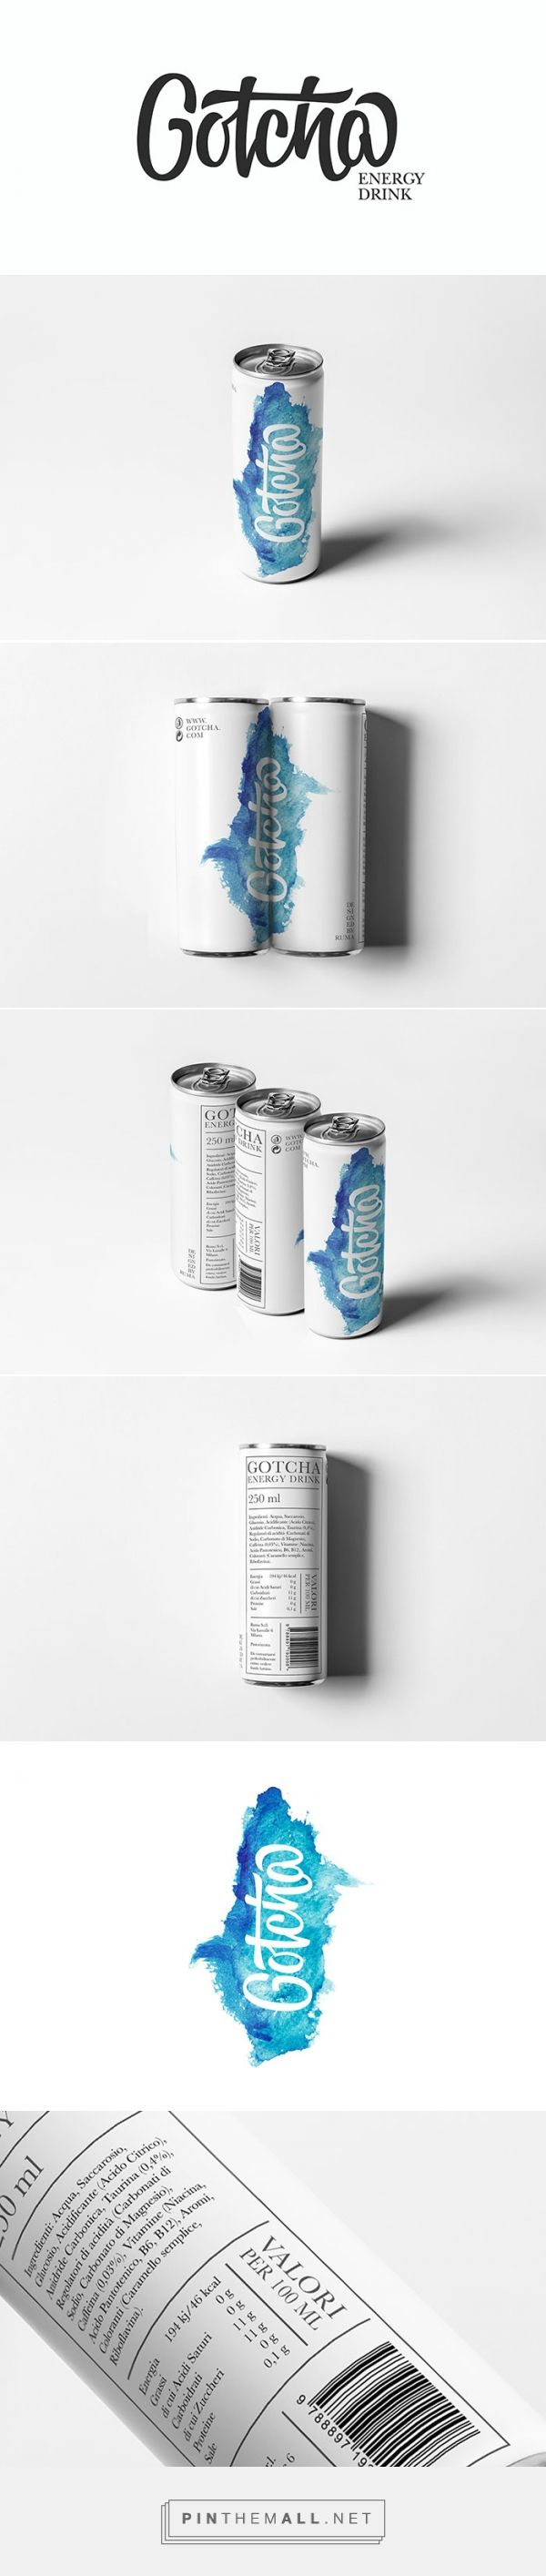 GOTCHA energy drink by Ruggero Magrì (student project). Source: Daily Package Design Inspiration. Pin curated by #SFields99 #packaging #design